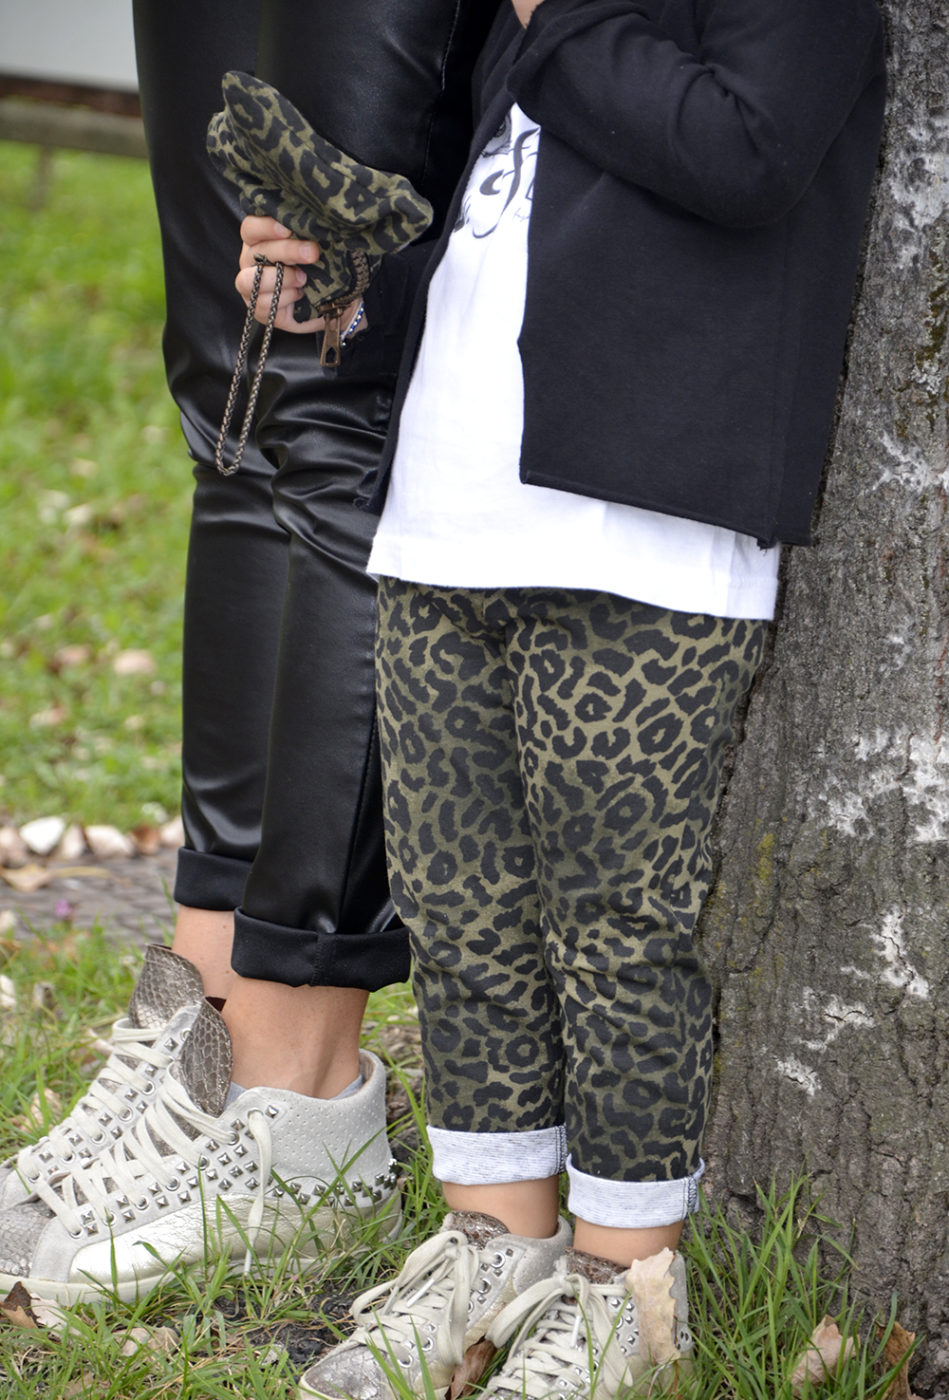 capsule_collection_follie_follie_by_momeme_mamma_bimba_coordinato_pantaloni_ecopelle_animalier_camo_felpa_sneakers_crime